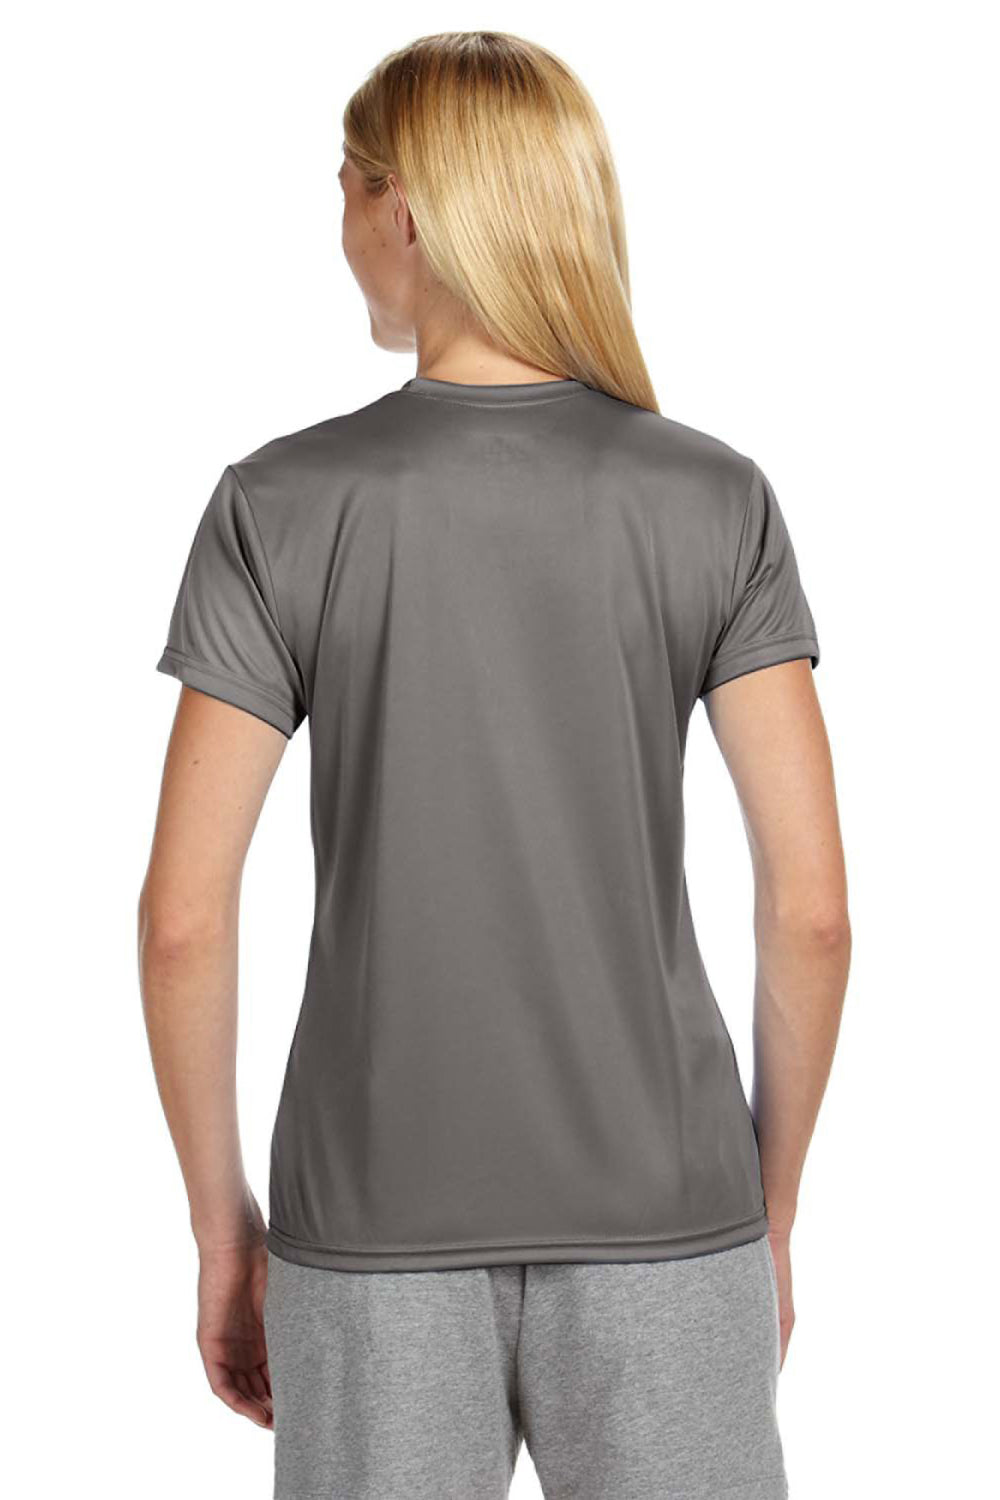 A4 NW3201 Womens Cooling Performance Moisture Wicking Short Sleeve Crewneck T-Shirt Graphite Grey Back